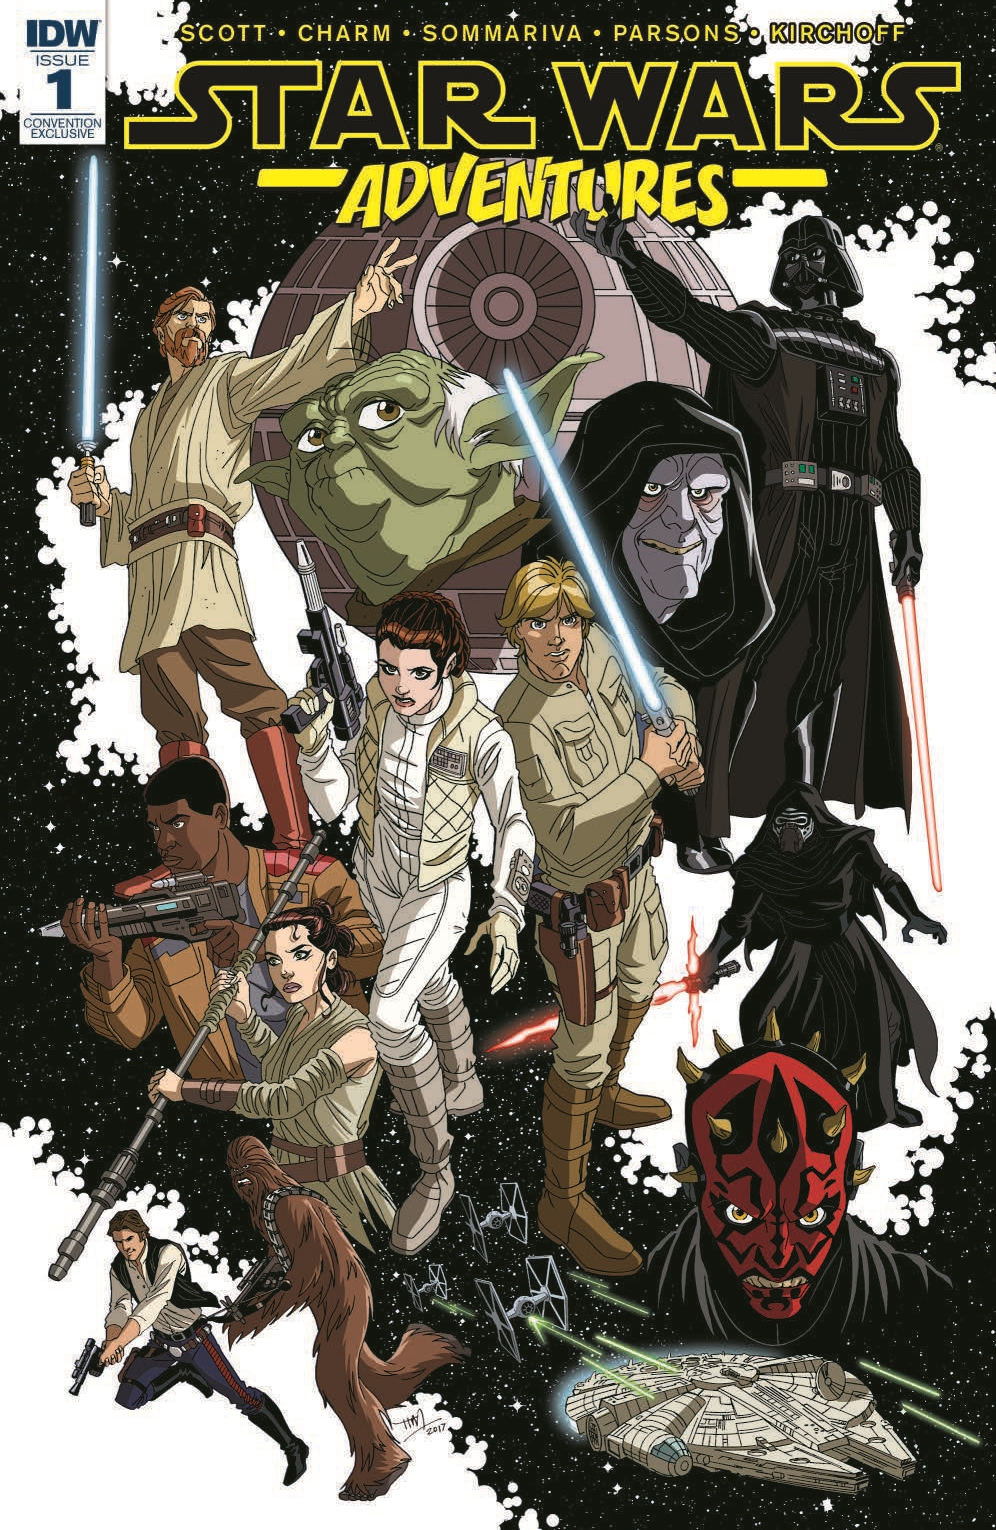 Star Wars Adventures #1 (Tim Levins Fan Expo Variant Cover) (06.09.2017)